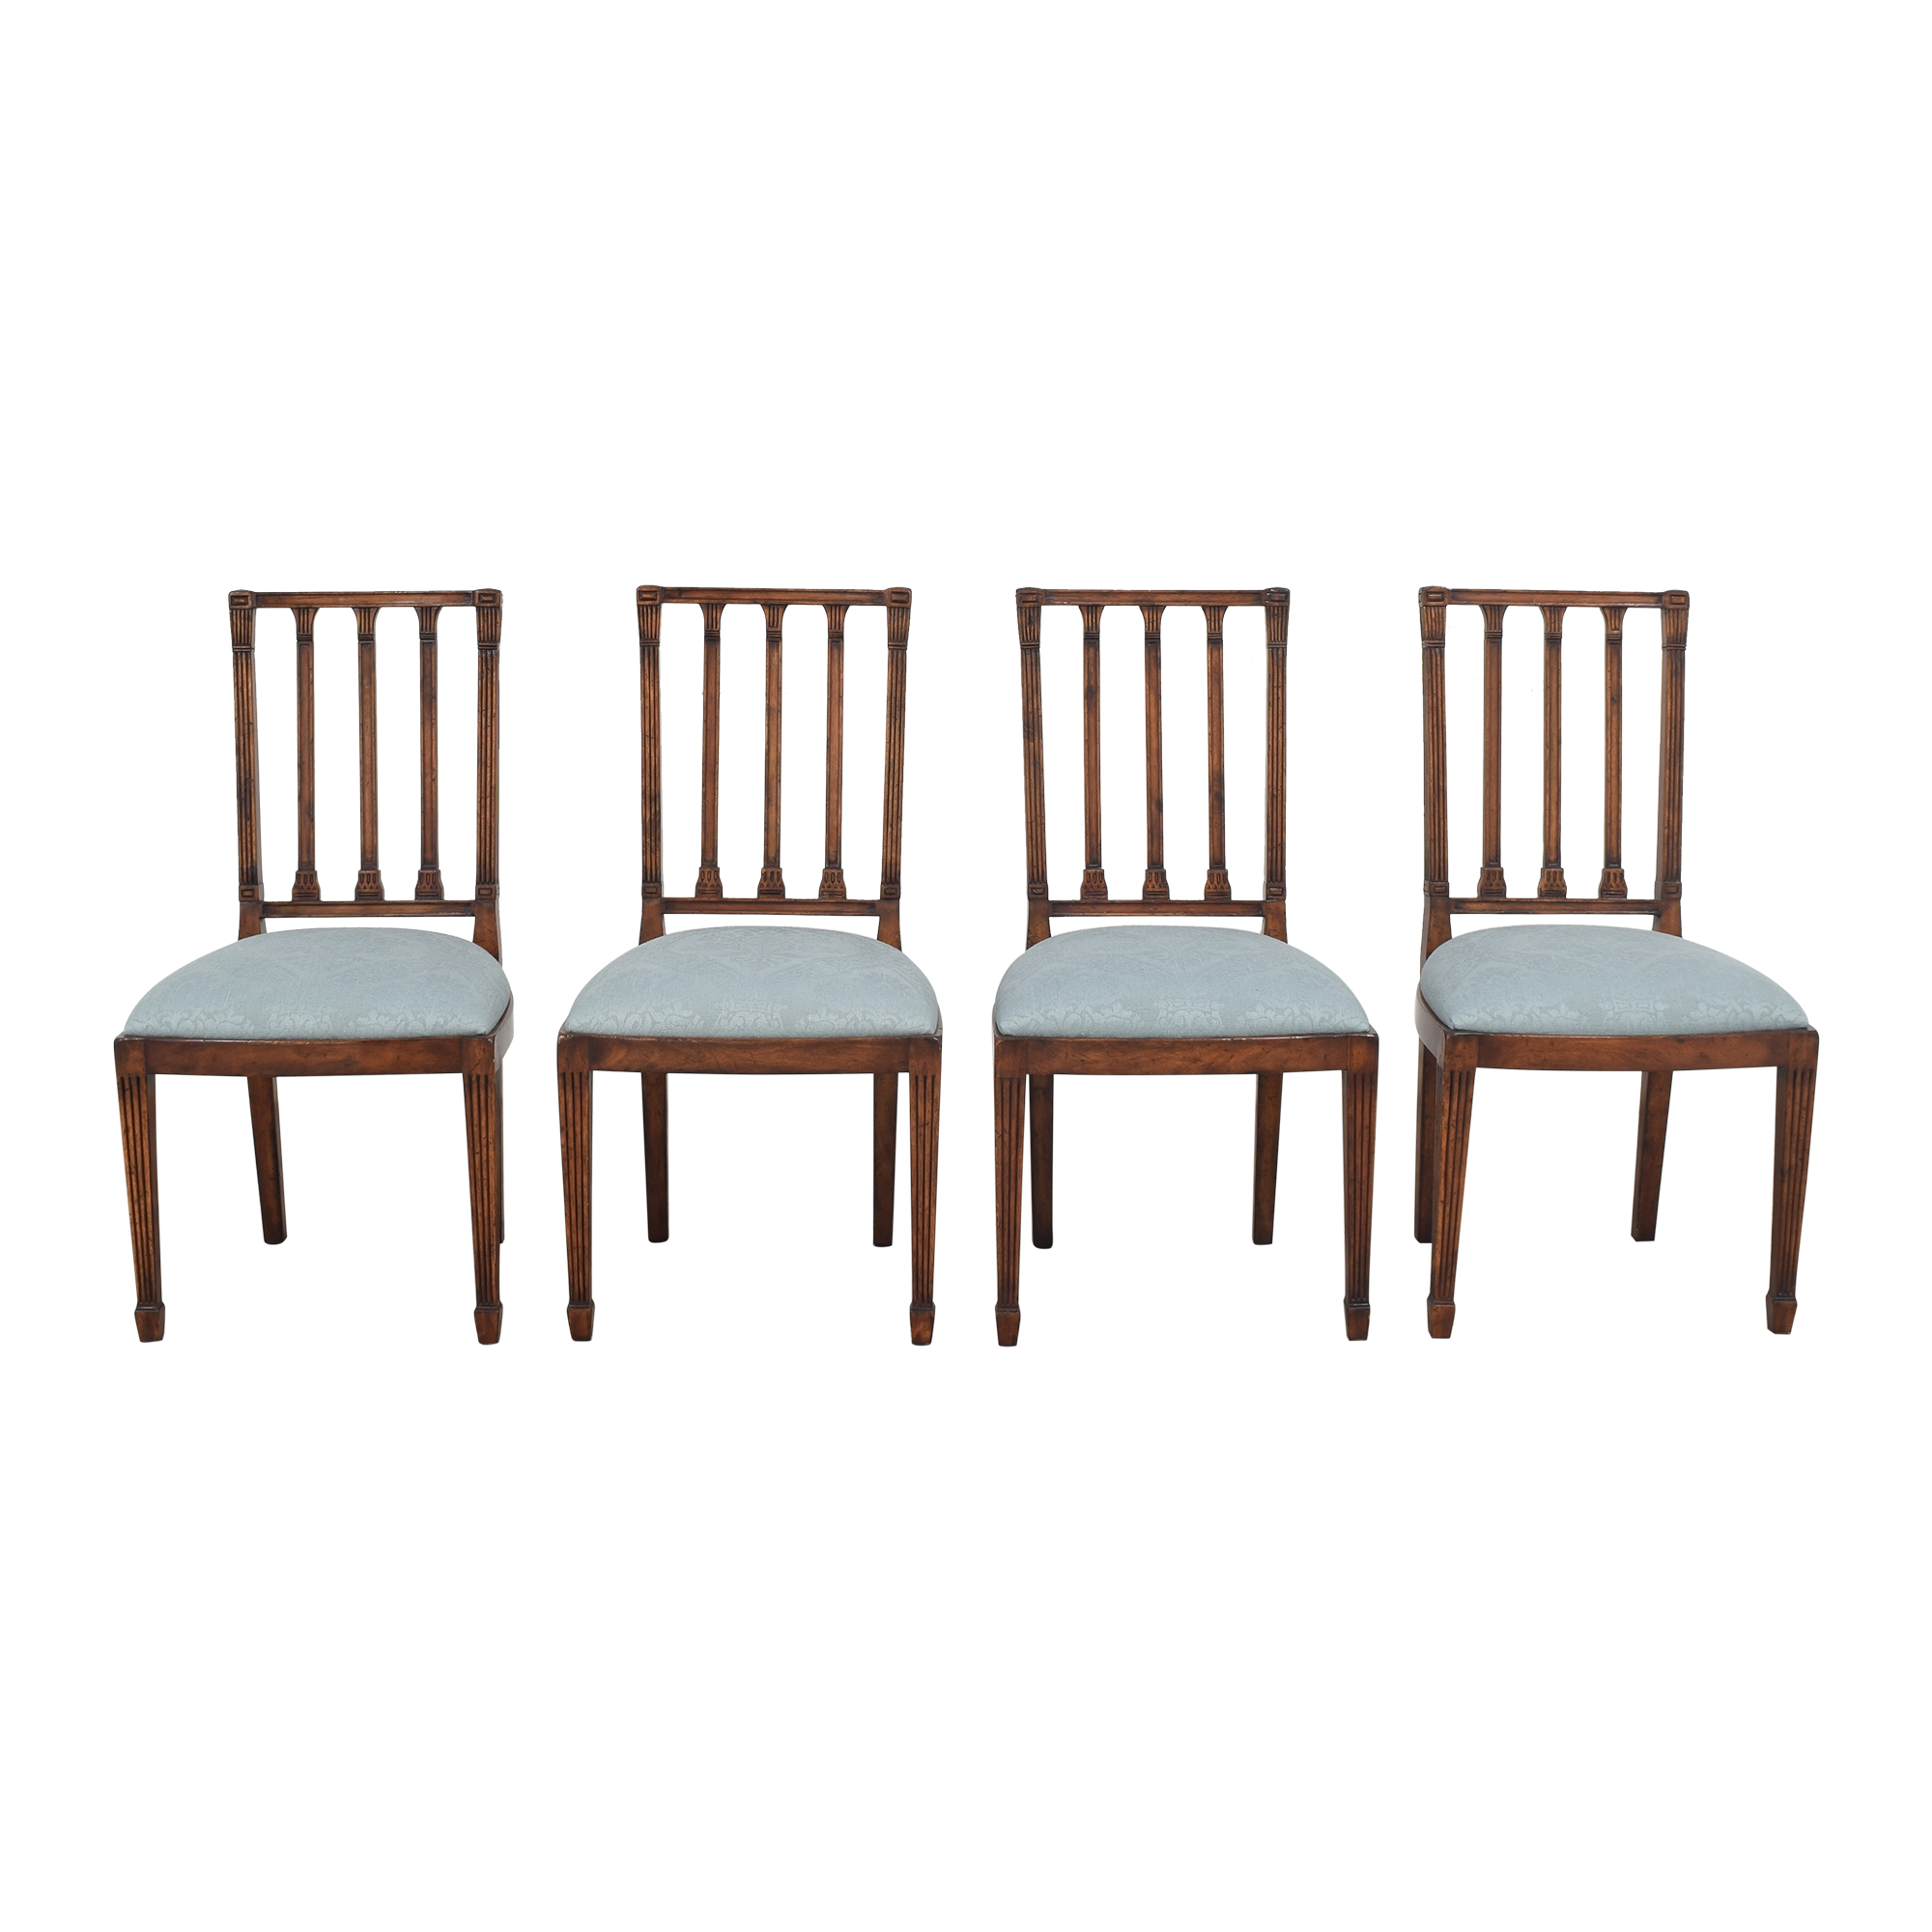 English Country Home English Country Home Upholstered Dining Chairs ma